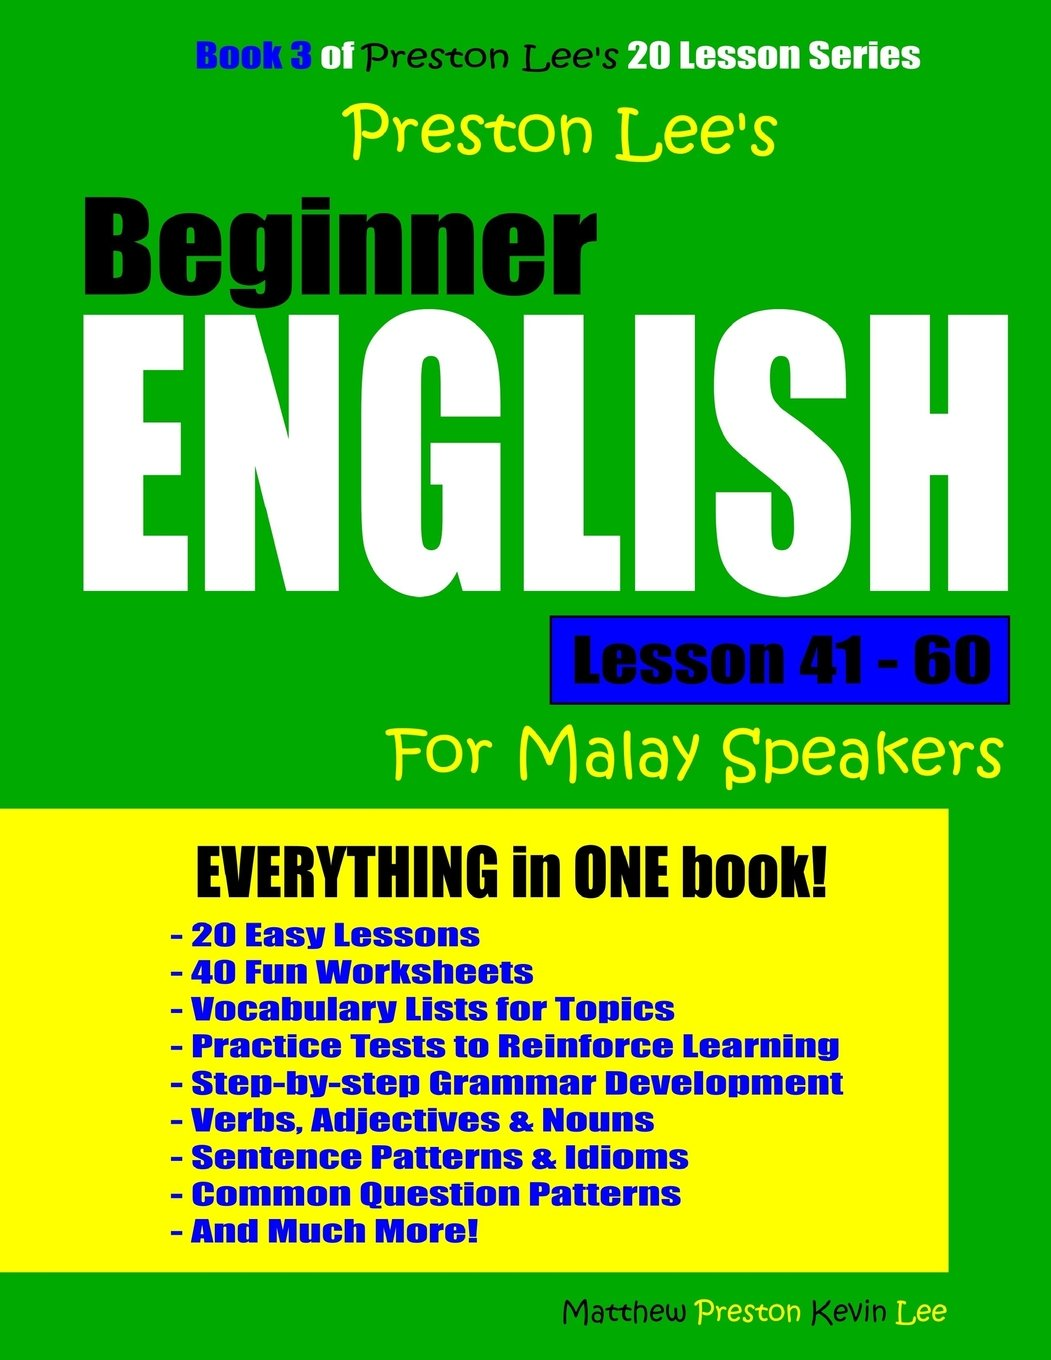 Download Preston Lee's Beginner English Lesson 41 - 60 For Malay Speakers pdf